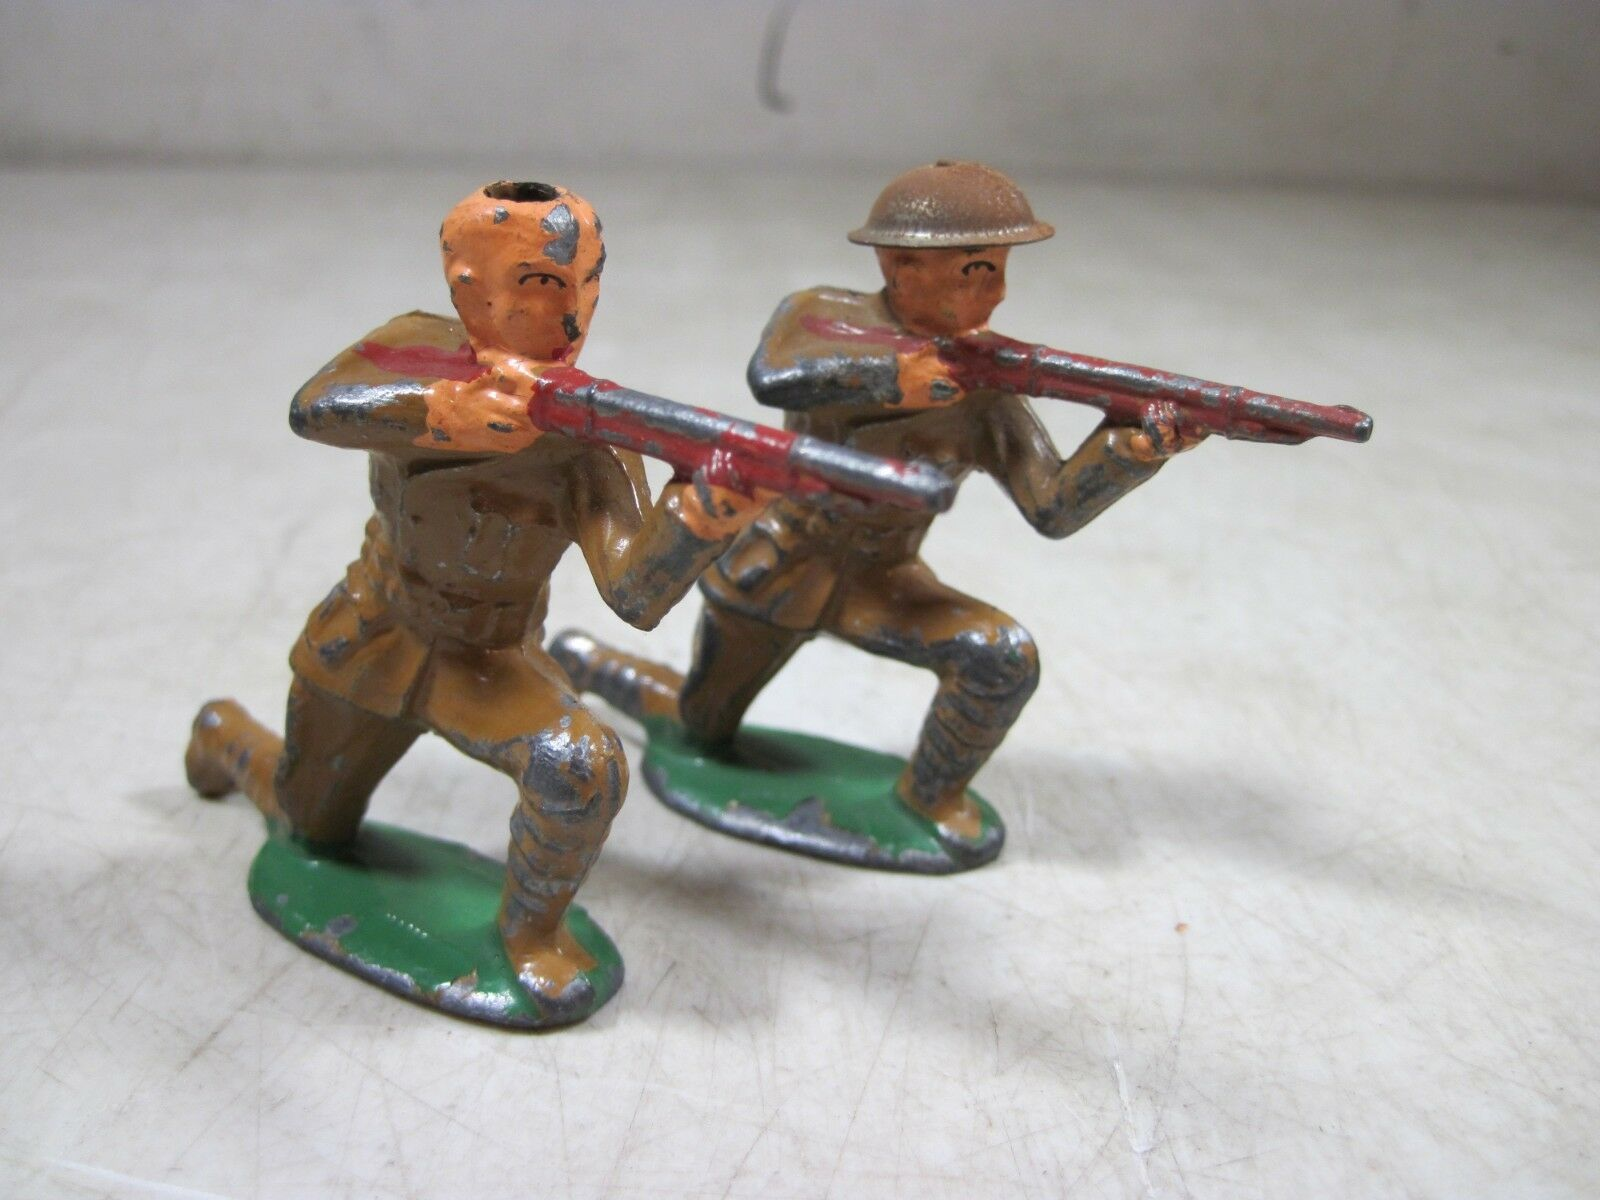 2 Antique Barclay Lead Toy Soldiers Rifleman Kneeling WWI Tin Helmet Infantry